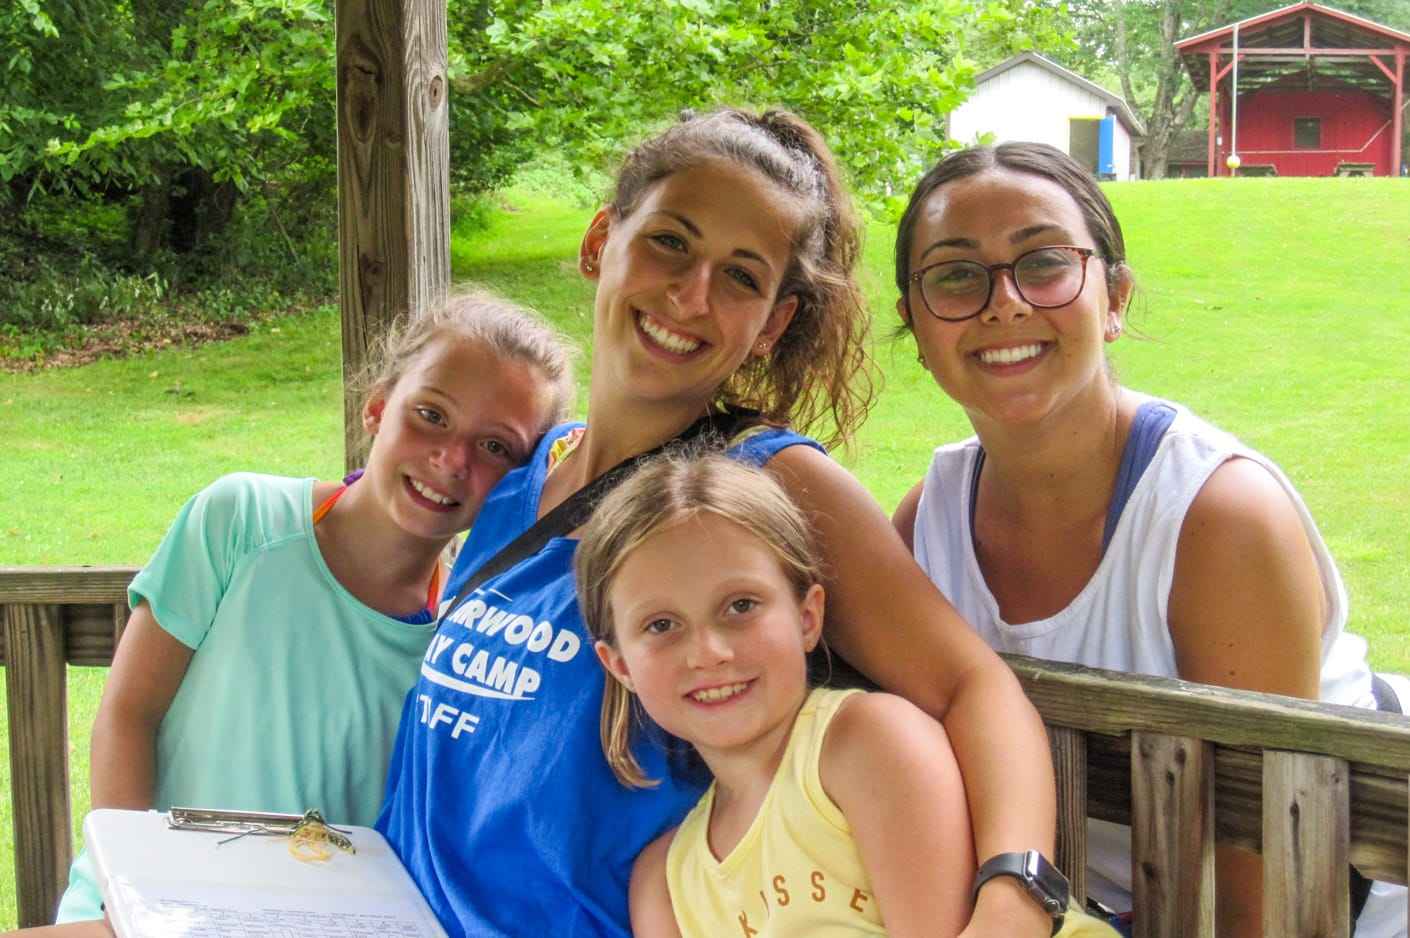 Female staff with campers smiling